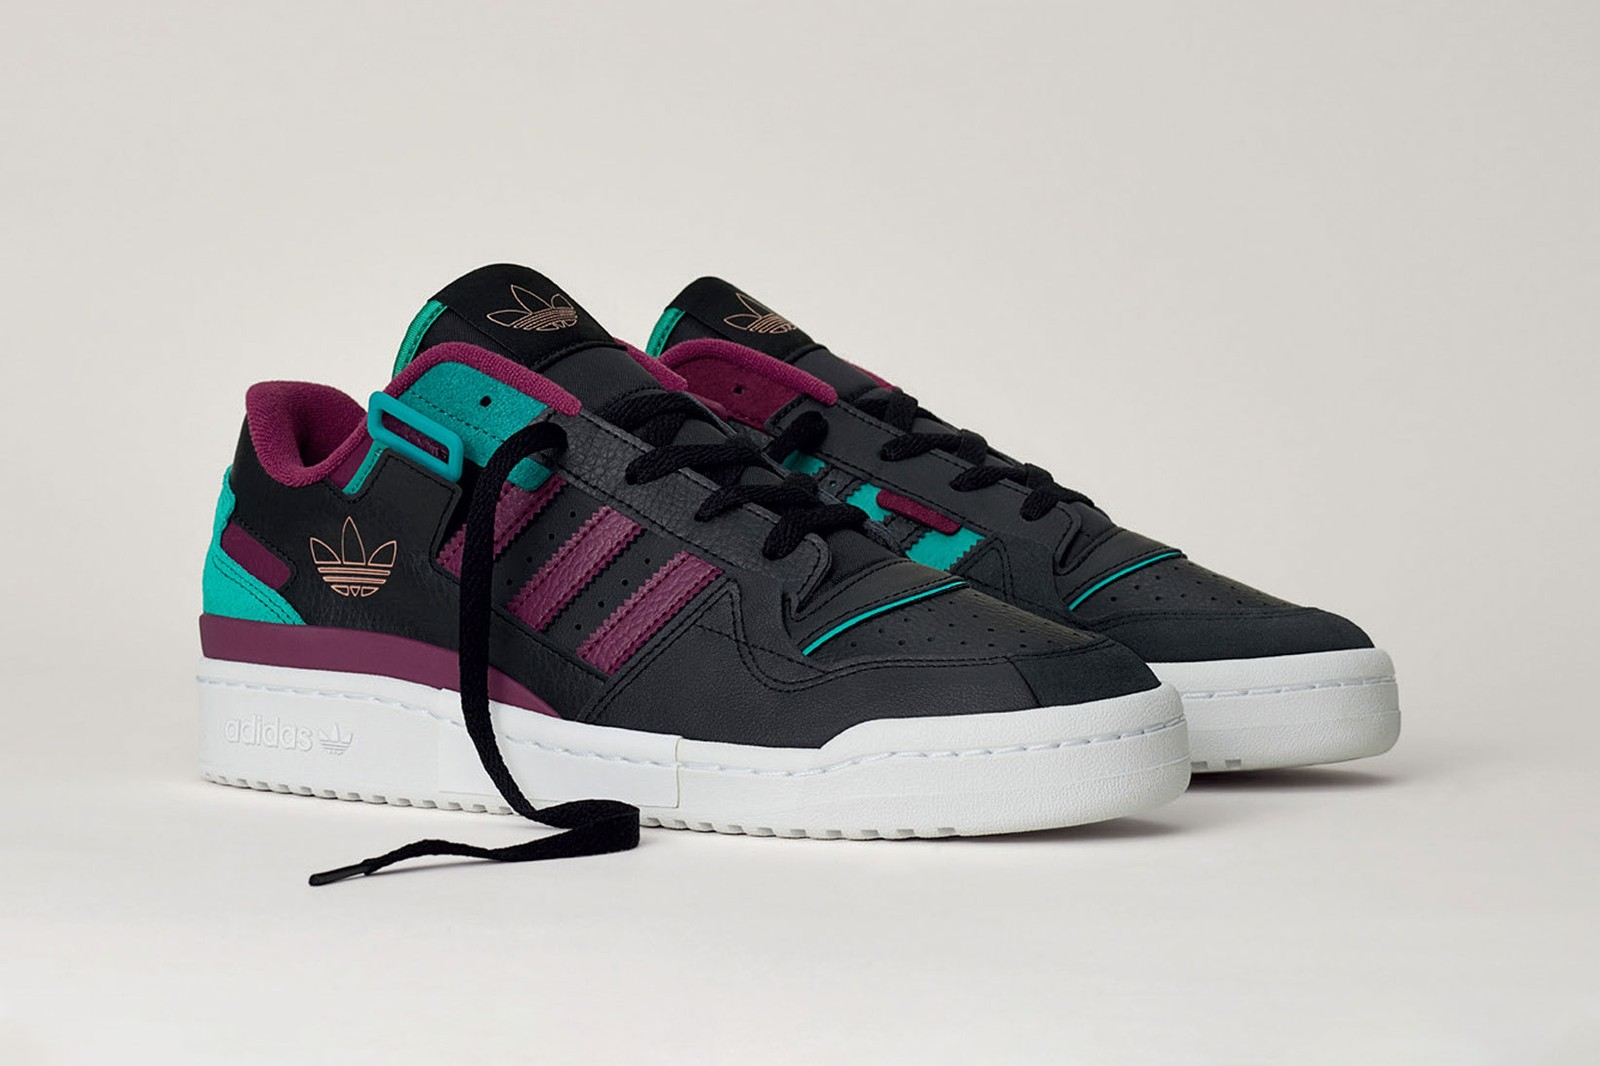 adidas originals forum 84 high exhibit mid low niki fall winter sneakers campaign release info